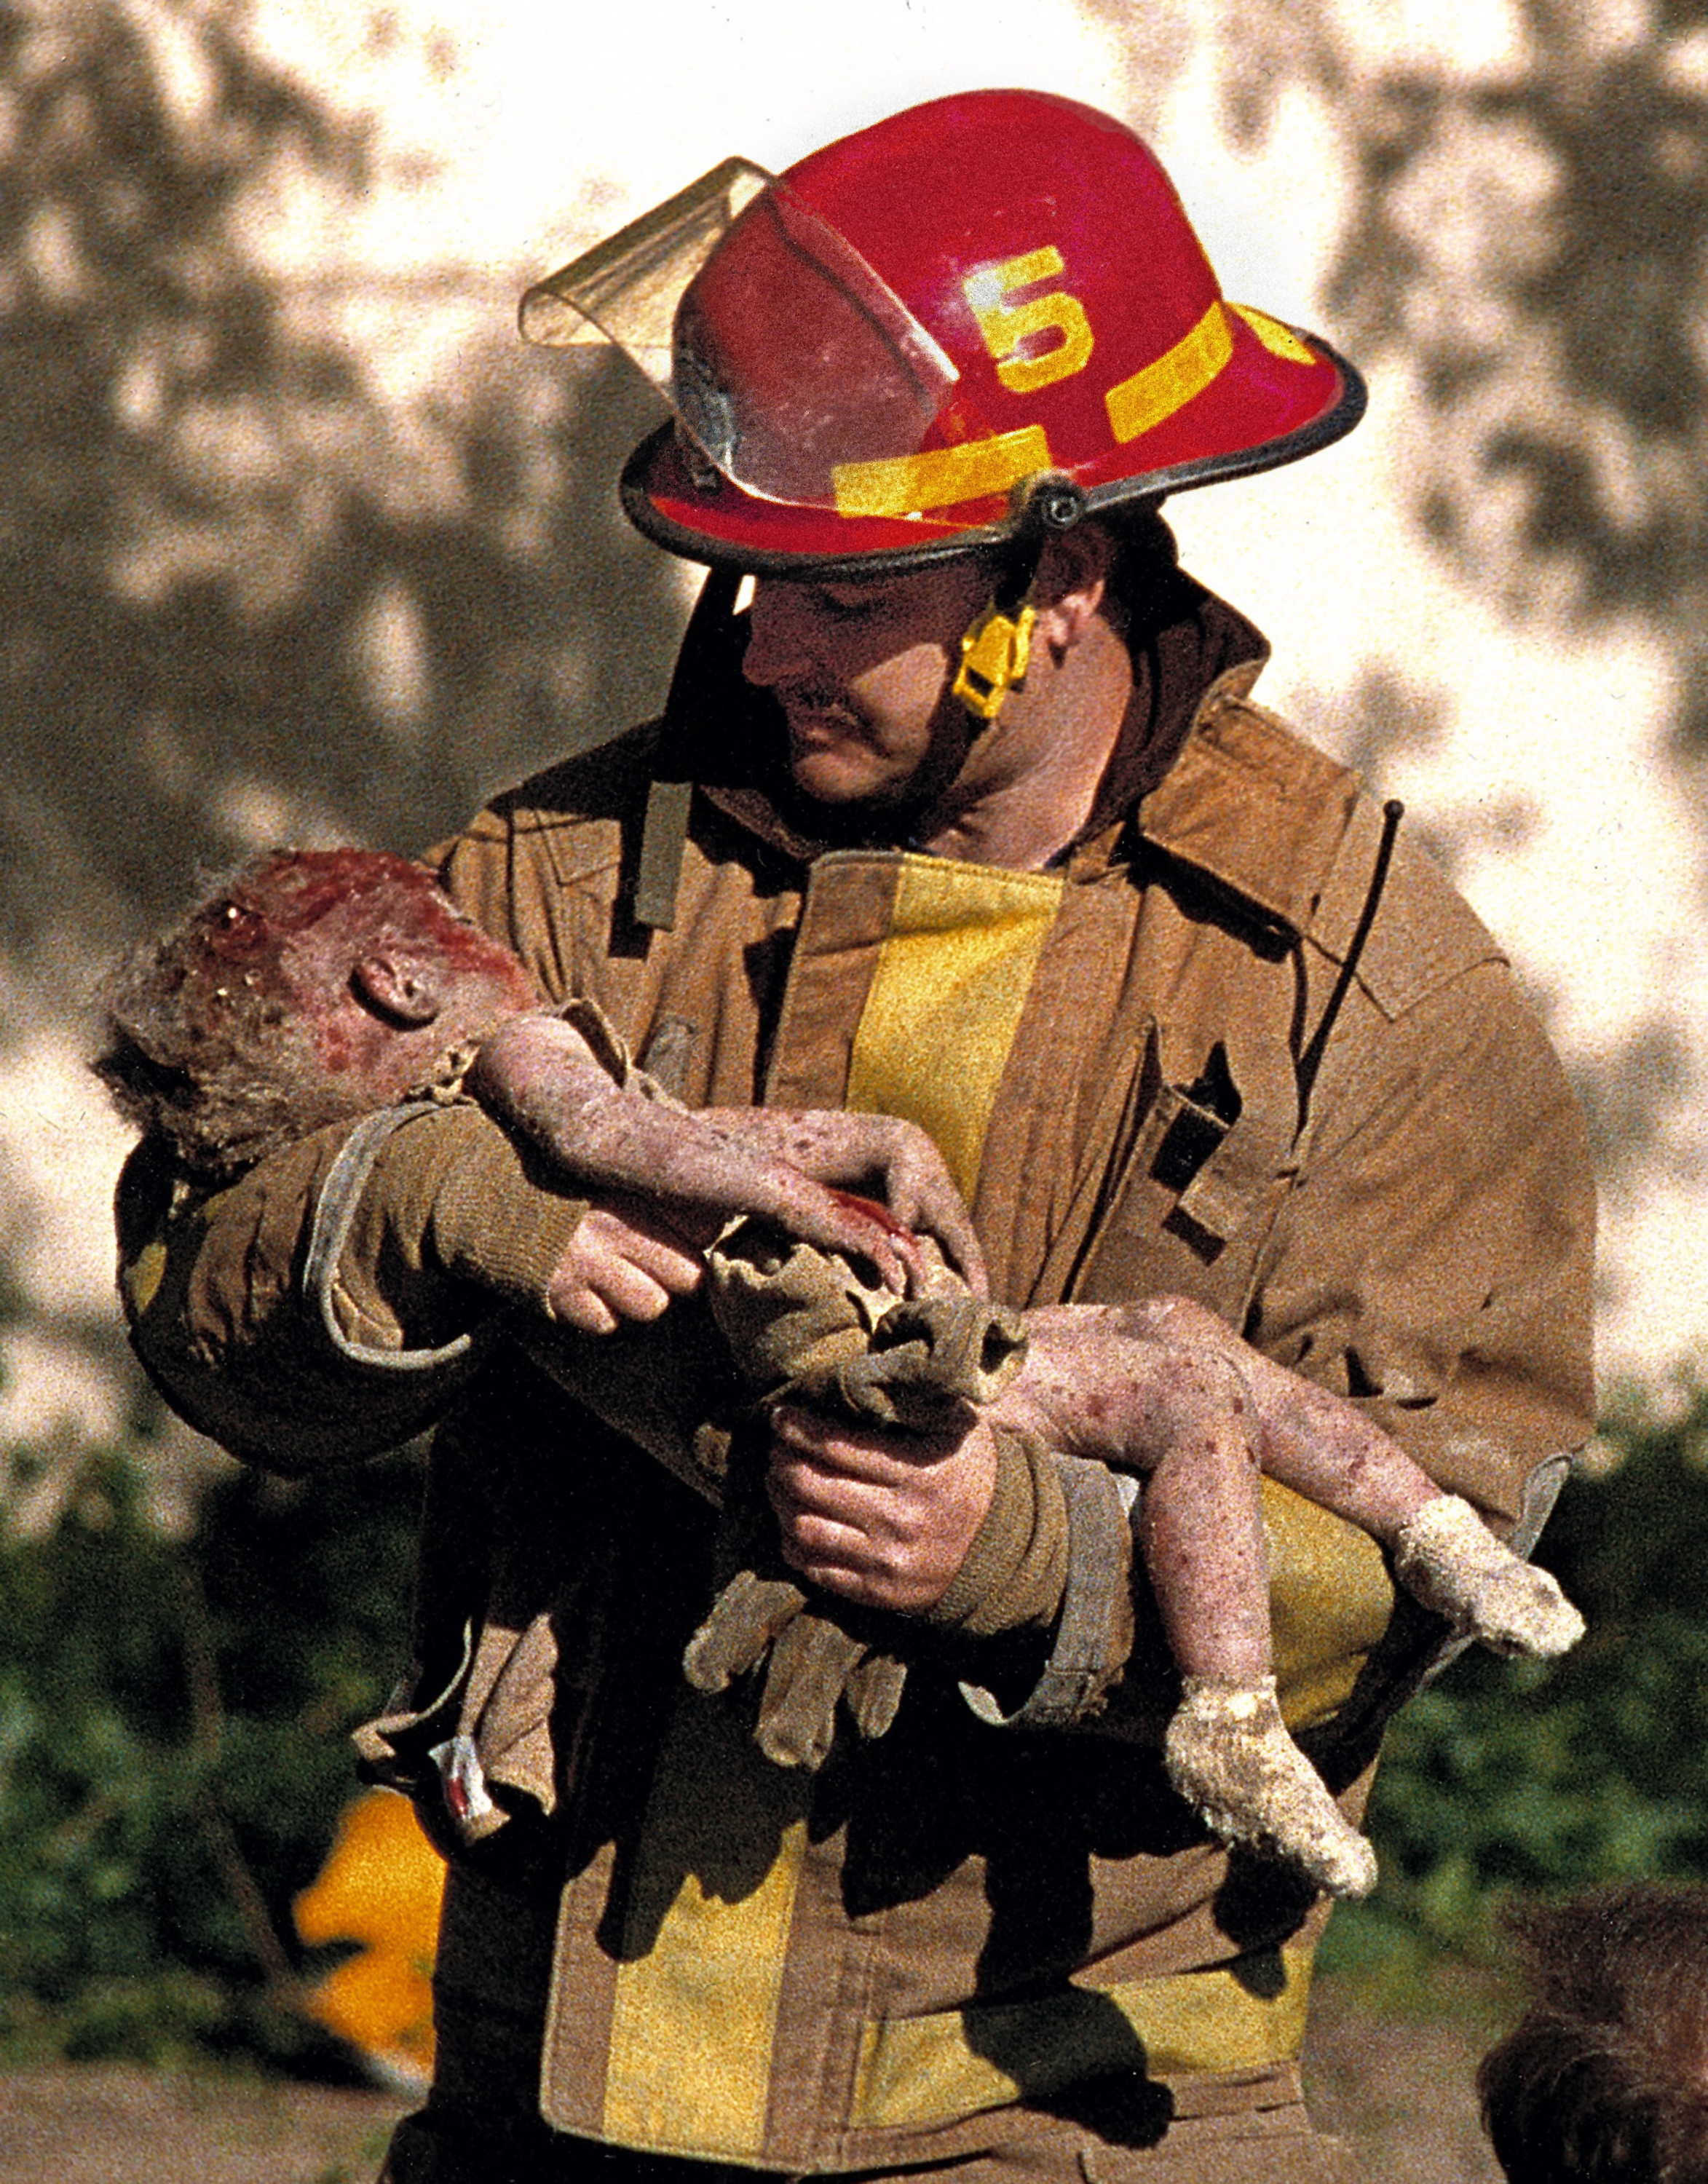 Oklahoma City fire Capt. Chris Fields carries 1-year-old Baylee Almon, injured in the April, 19, 1995 bombing of the Alfred Murrah Federal Building in downtown Oklahoma City. The child died of her injuries. (Charles H. Porter IV via AP)